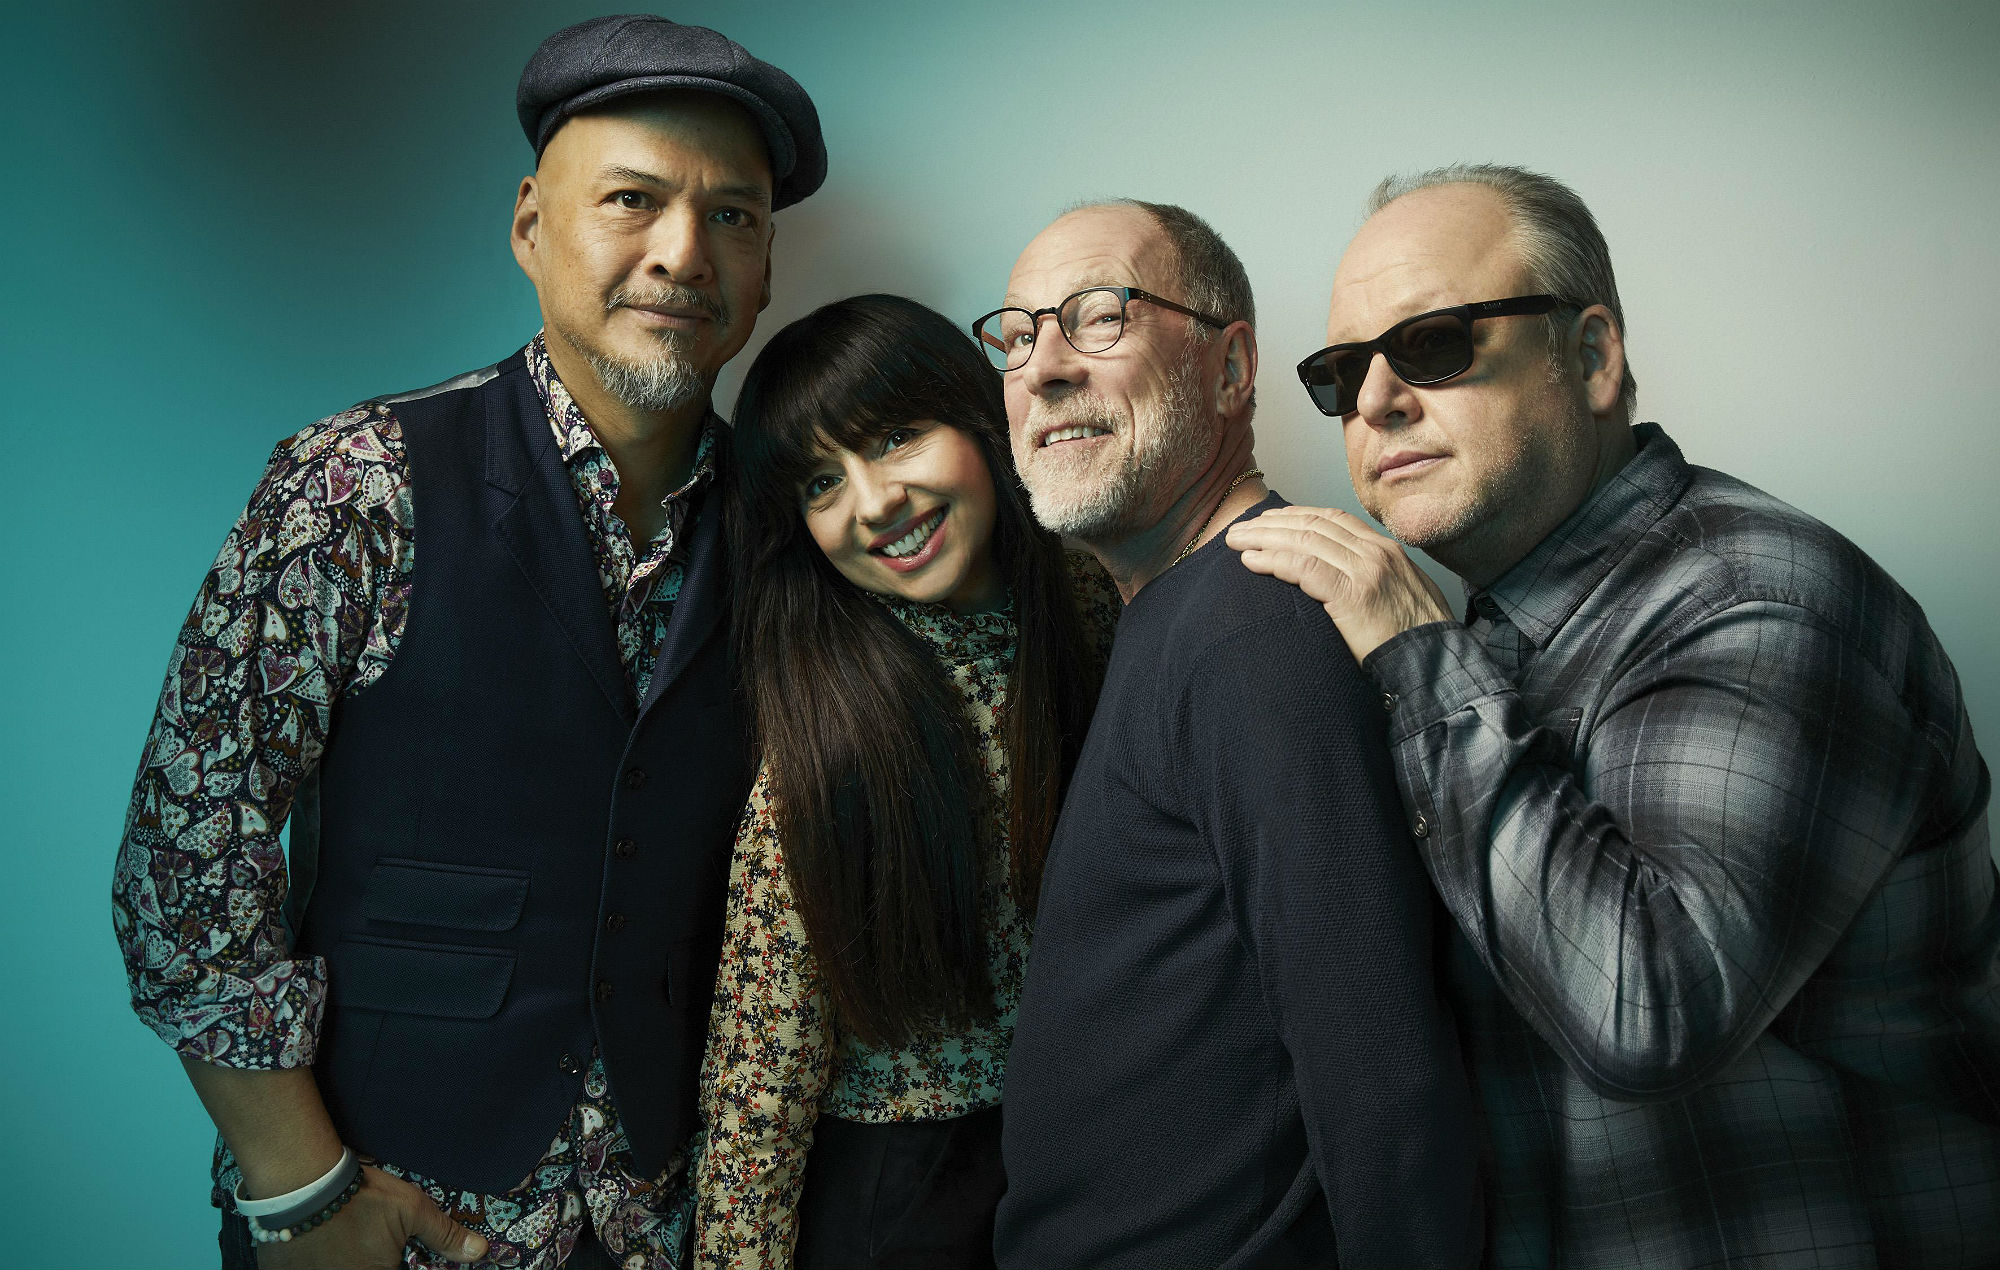 Watch Pixies' epic cinematic video for their new single 'Hear Me Out'